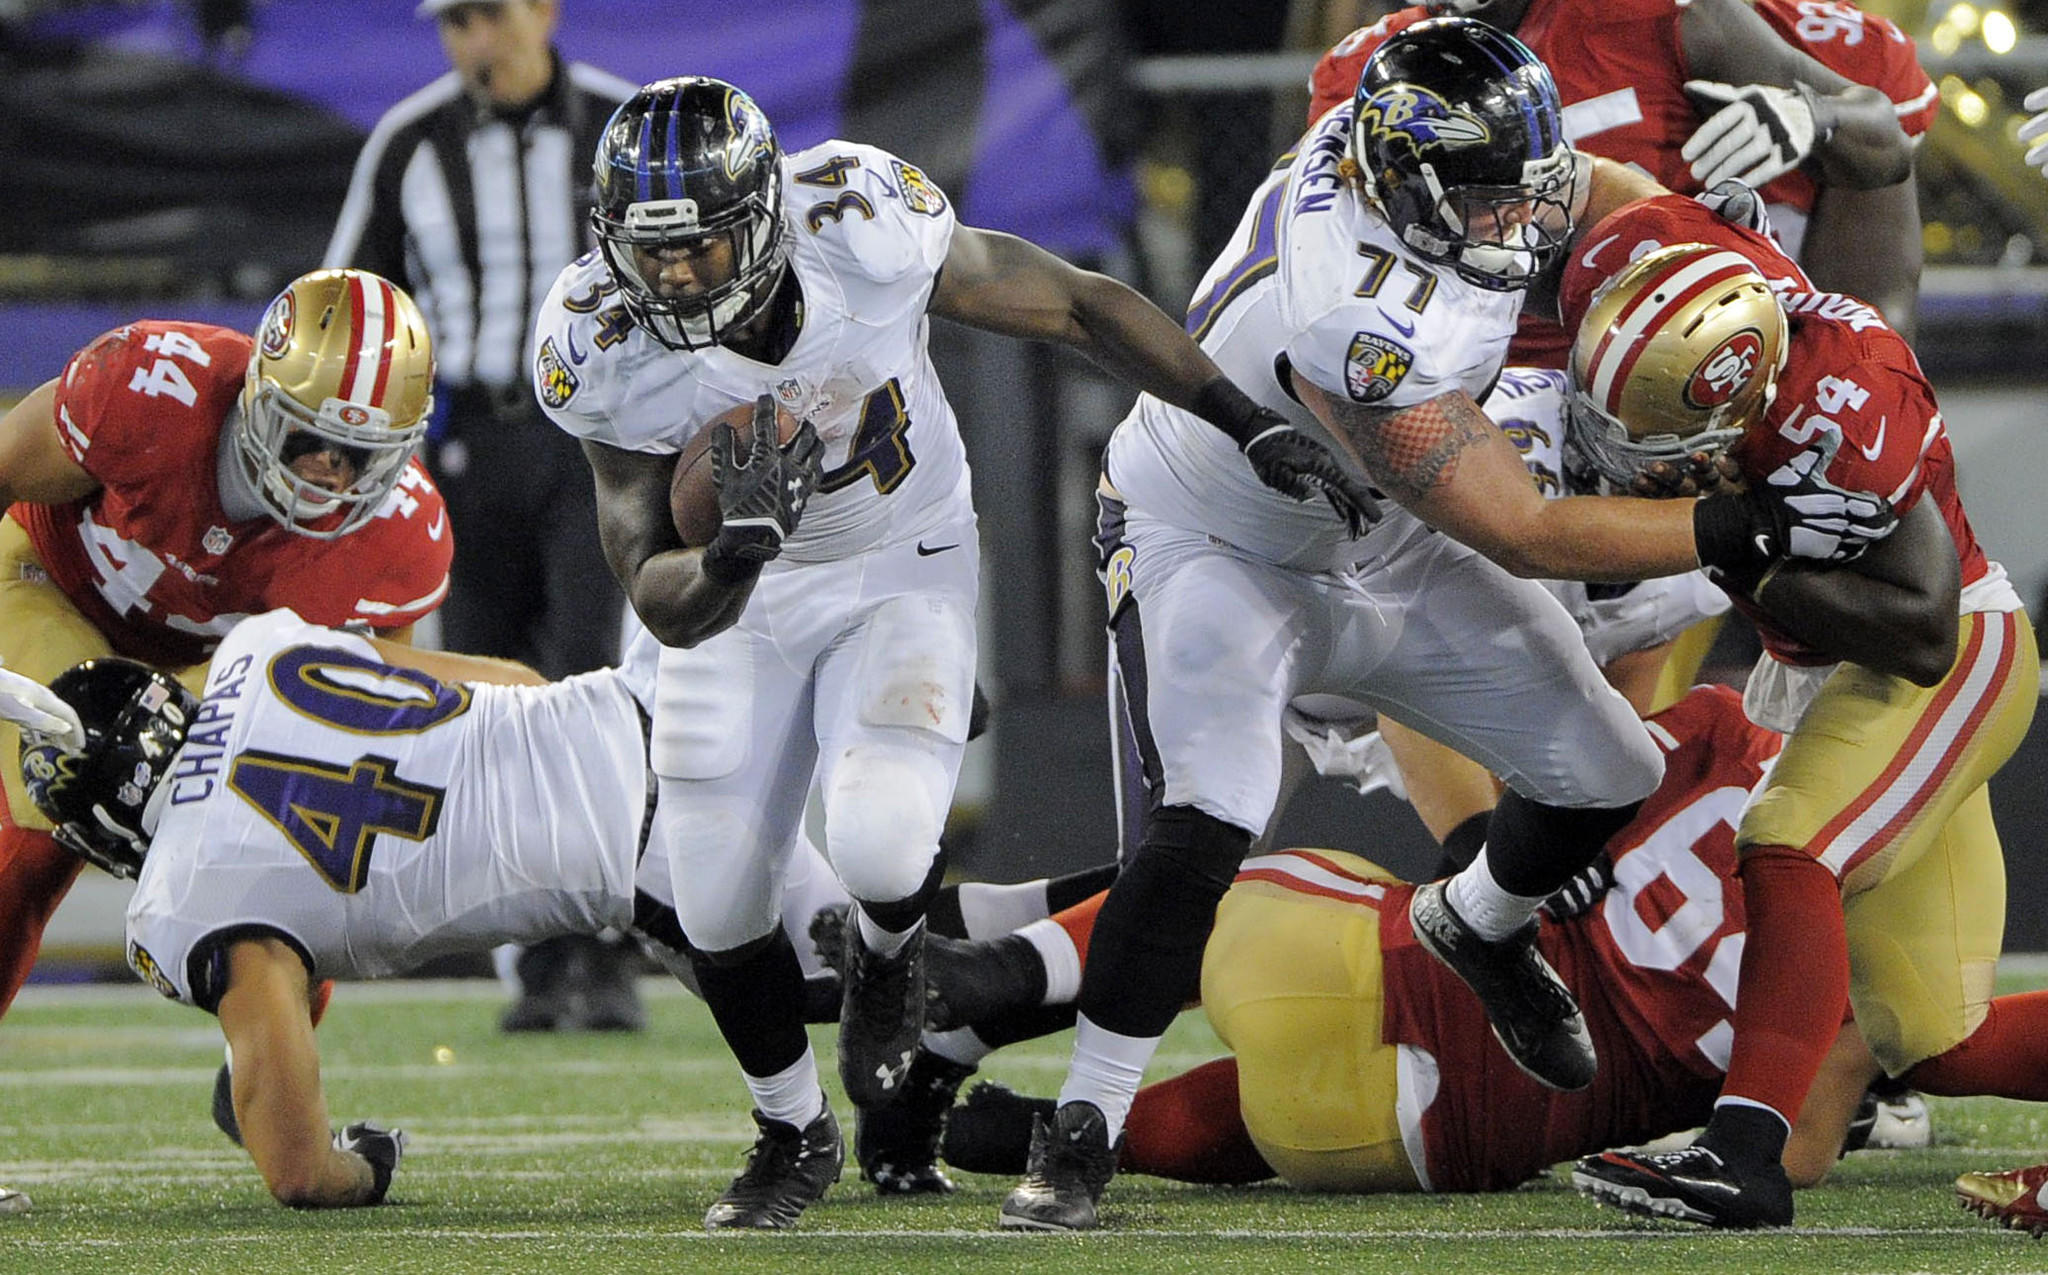 Ravens running back Lorenzo Taliaferro finds a hole against the 49ers as Ravens offensive linemen Shaun Chapas and Ryan Jensen provide blocks.